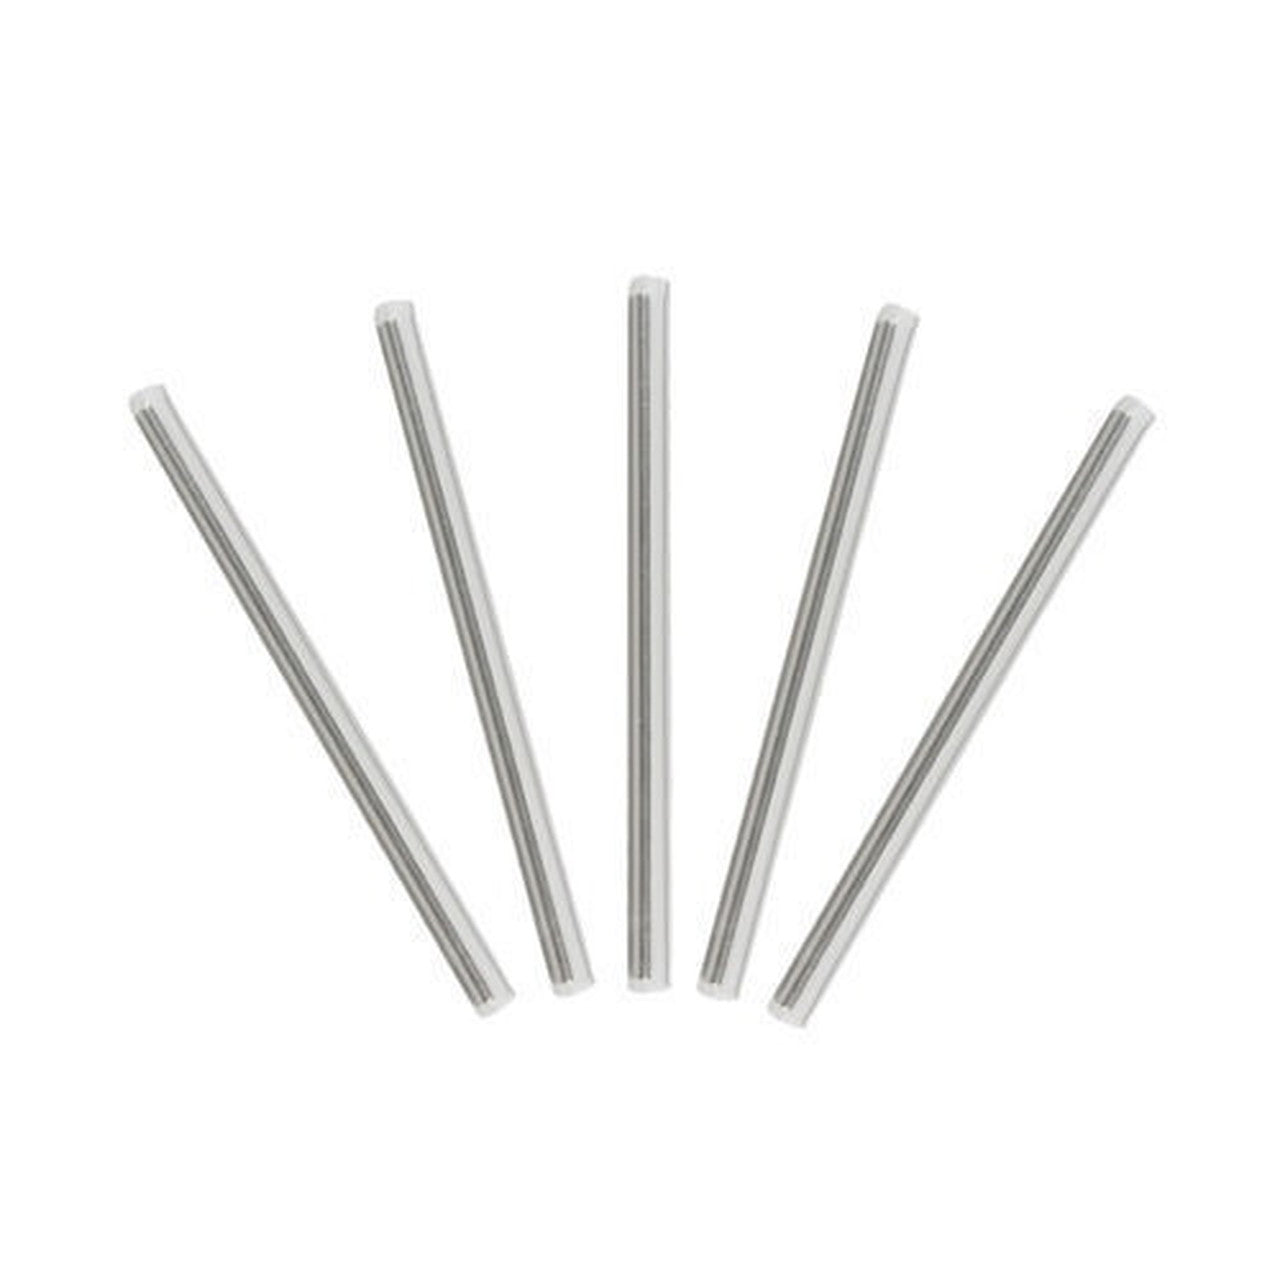 60mm Splice protectors pack of 100